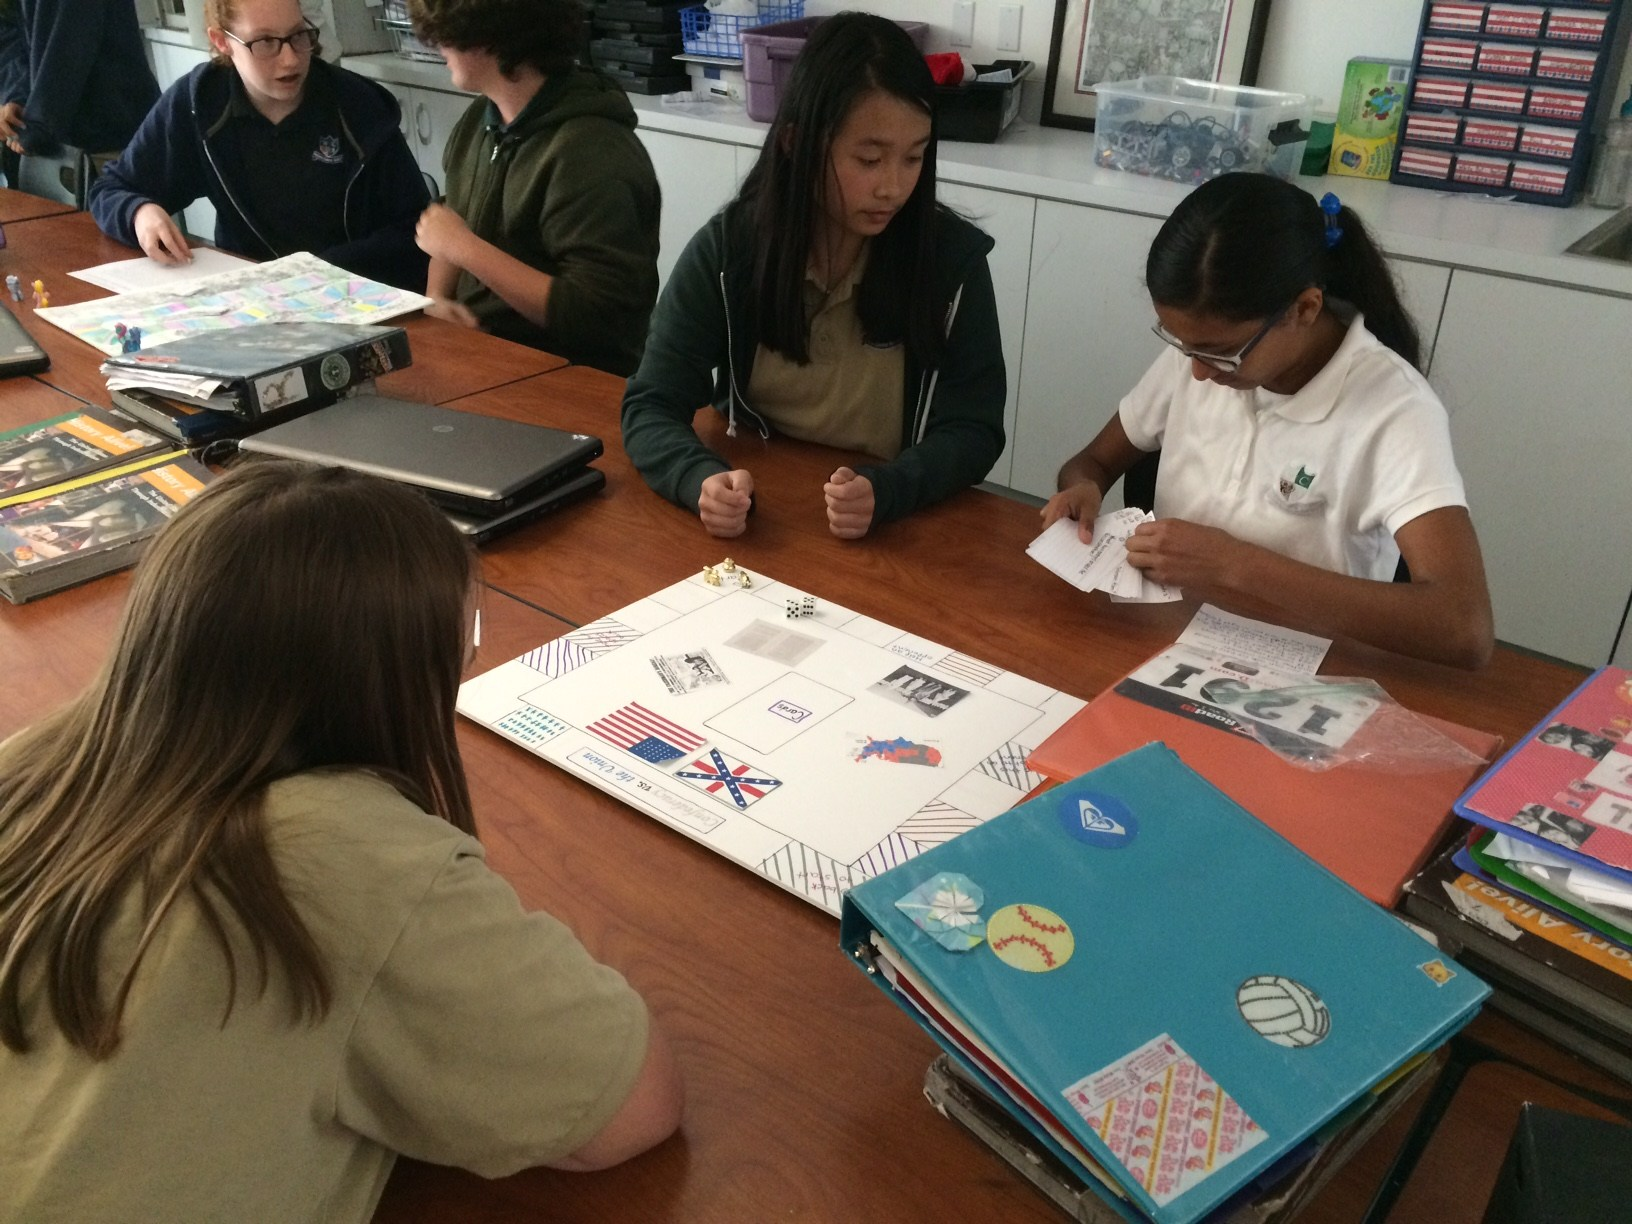 The eighth graders just finished learning about the Reconstruction Period of history following the Civil War.  Students created review games based on those concepts.